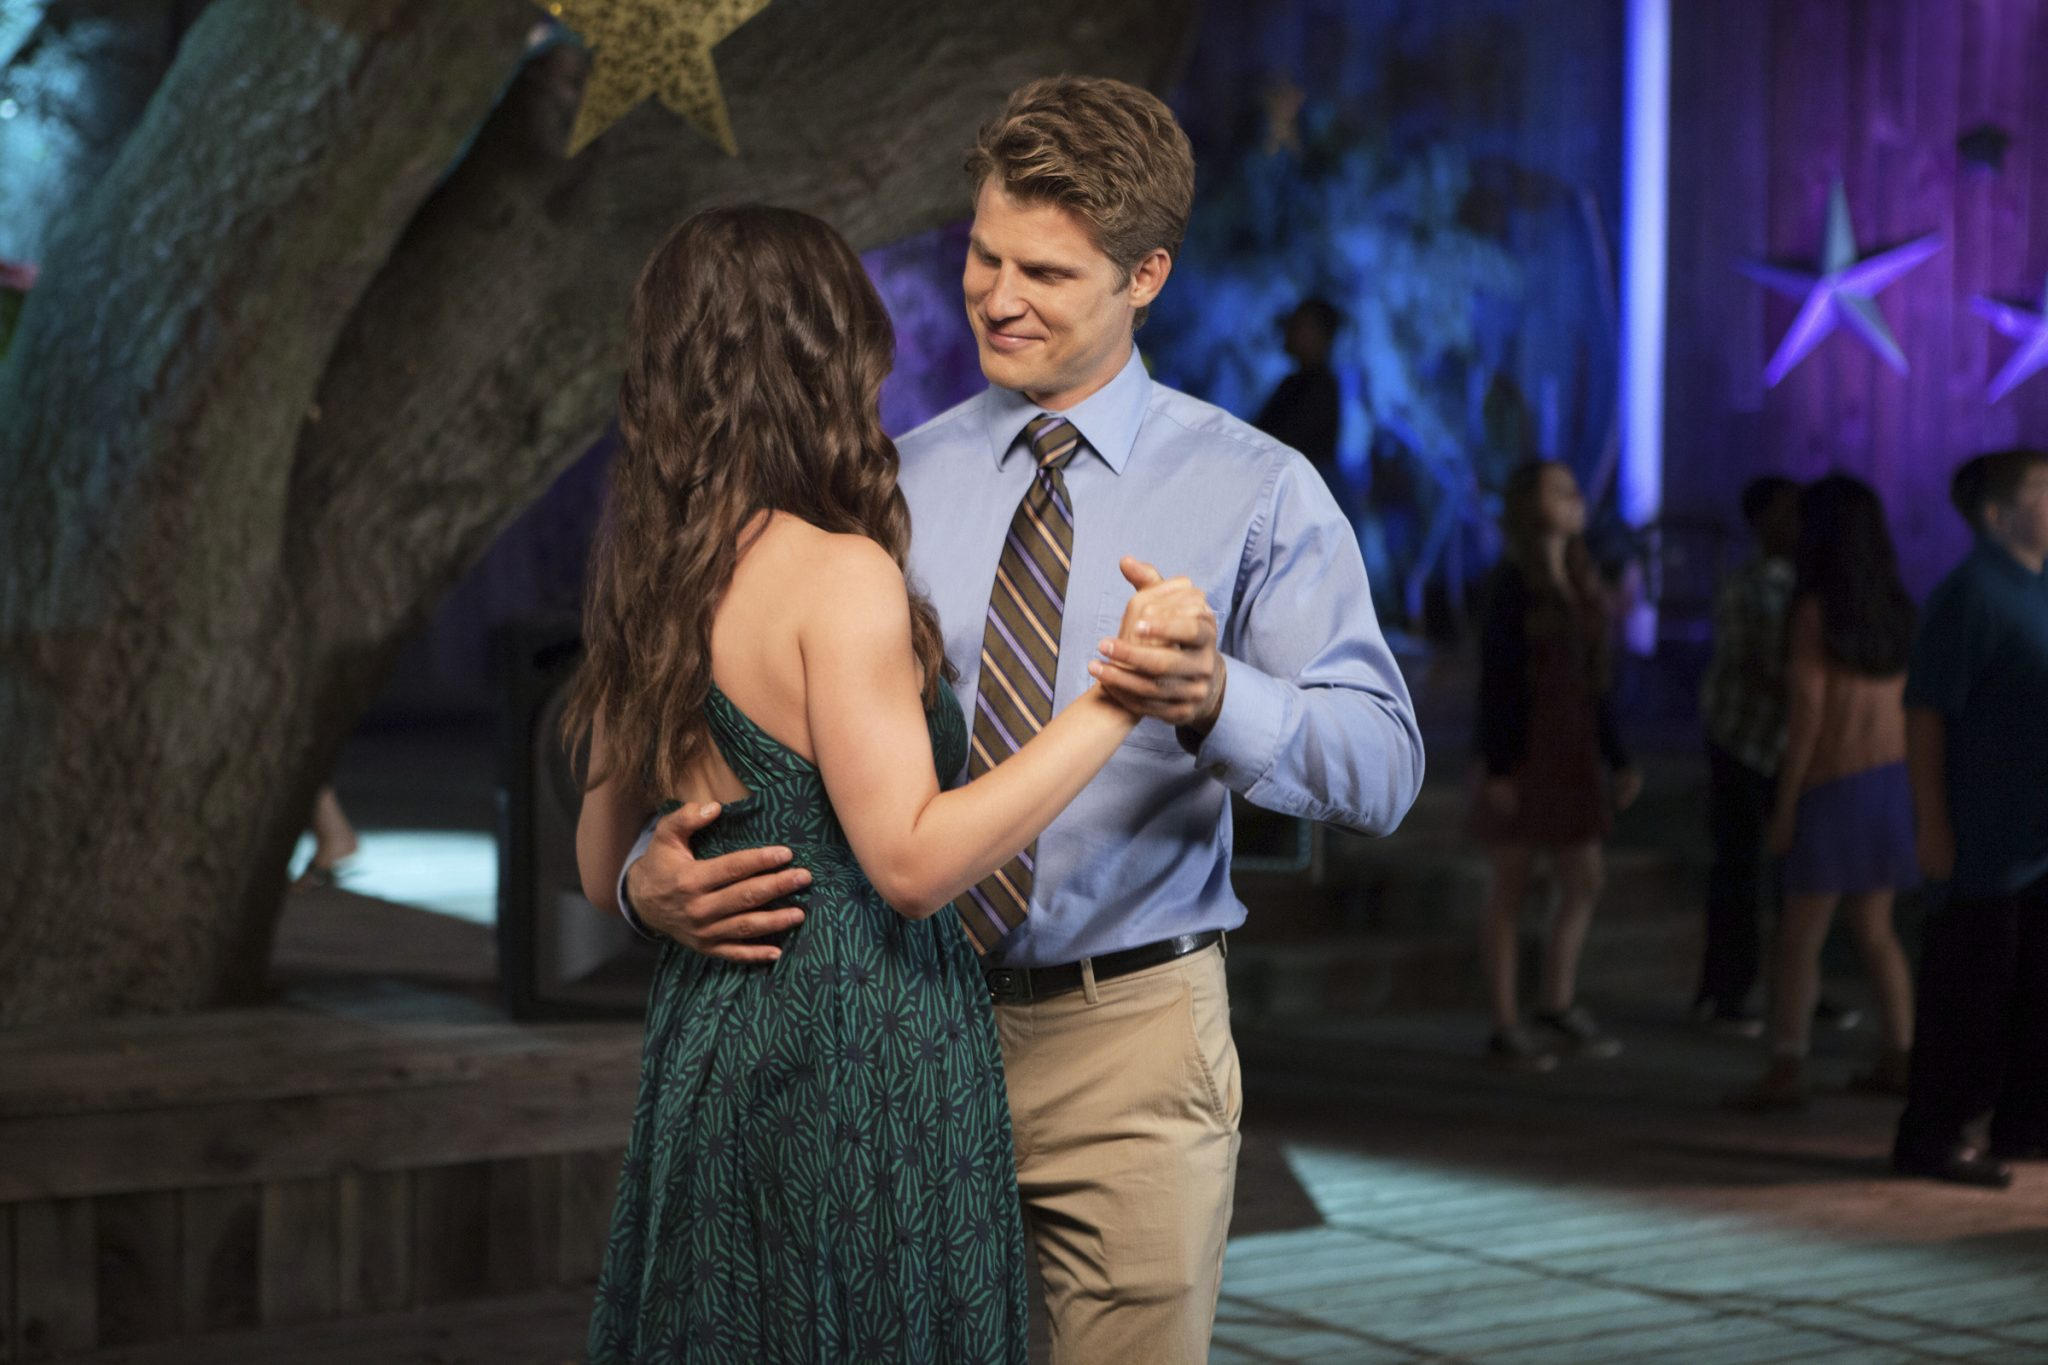 Hallmark, Adventures in Love and Babysitting, Photo: Tammin Sursok, Travis Van Winkle Credit: ©2020 Crown Media United States LLC/Photographer: Courtesy Larry Levinson Productions